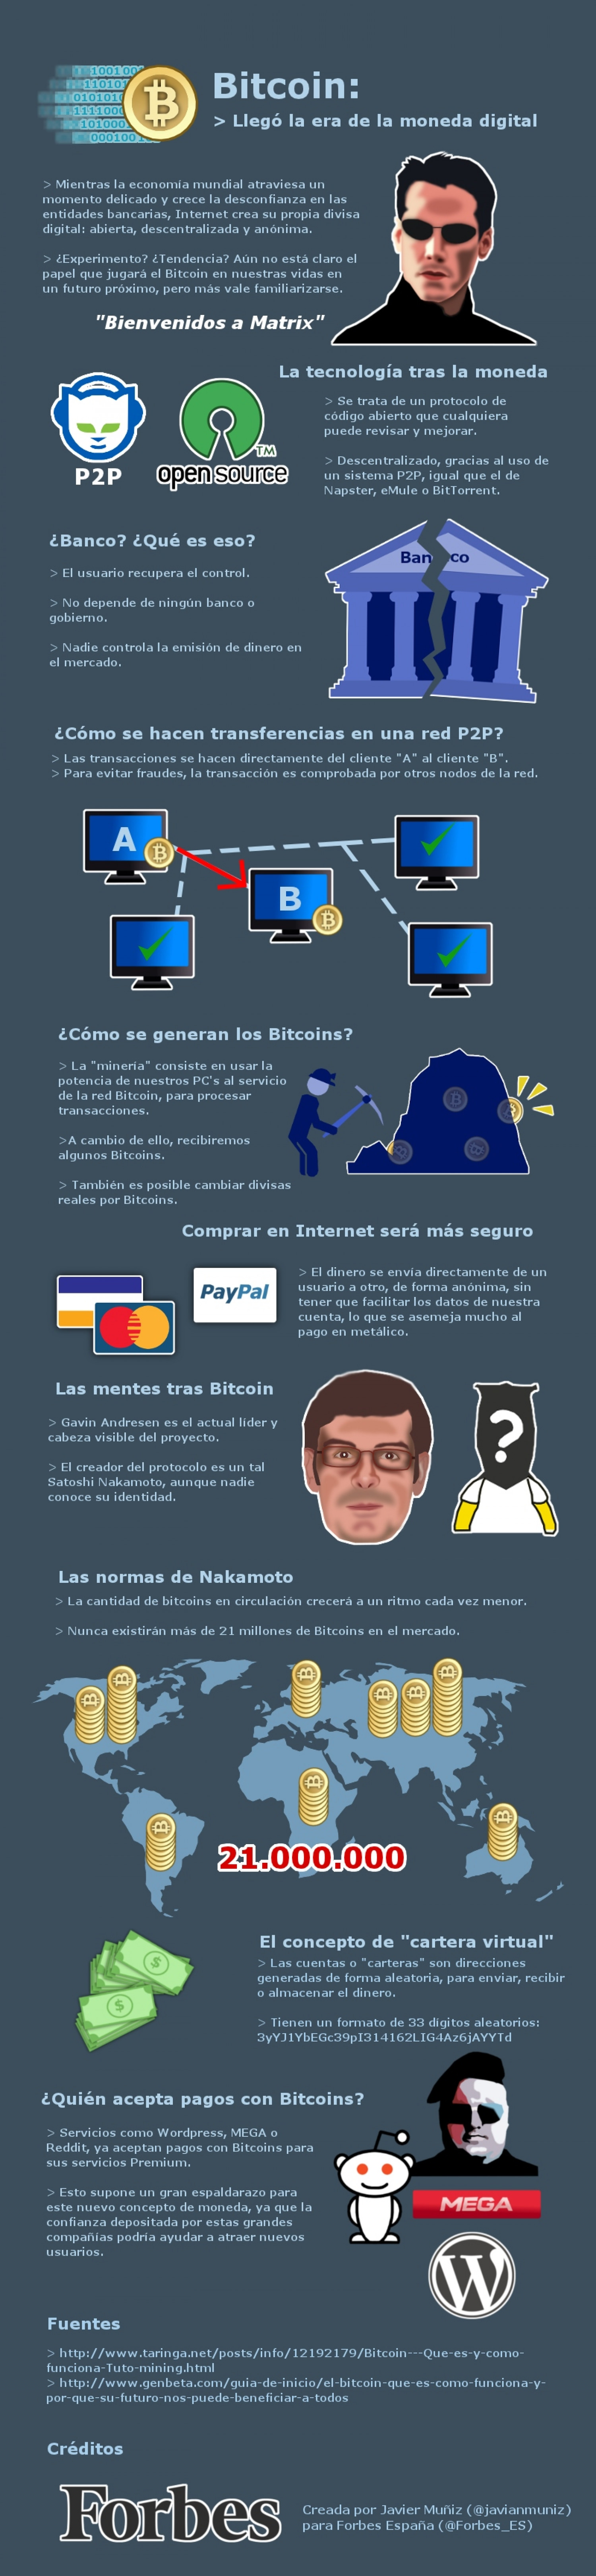 Bitcoin: llegó la era de la moneda digital Infographic